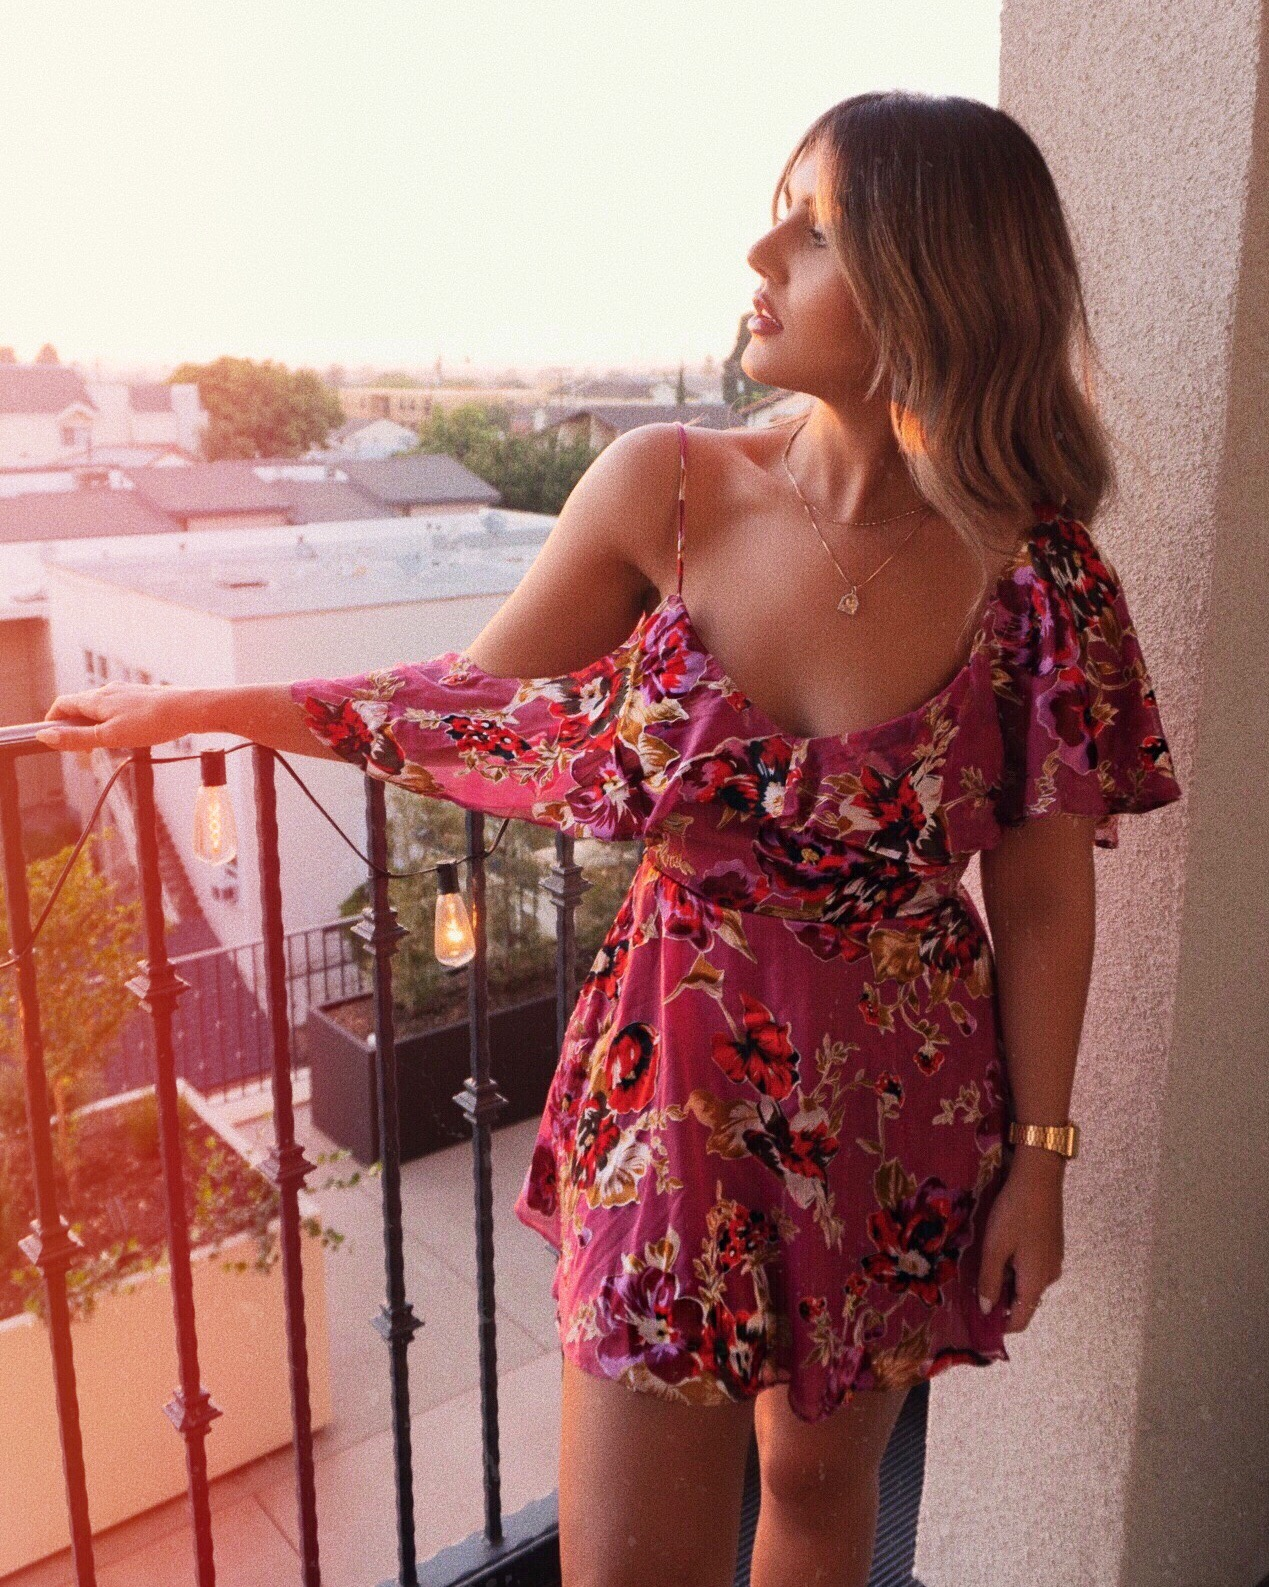 ale by Alessandra x revolve, Xiomara dress, romantic dress, romantic date night outfit, parmida Kiani, what to wear, how to style, la blogger, revolve dress, asymmetrical dress, off the shoulder dress, golden hour ottd, ottn, fashion Inspo, date night outfit, date night dress, marc Jacobs beauty truth or bare lipstick,